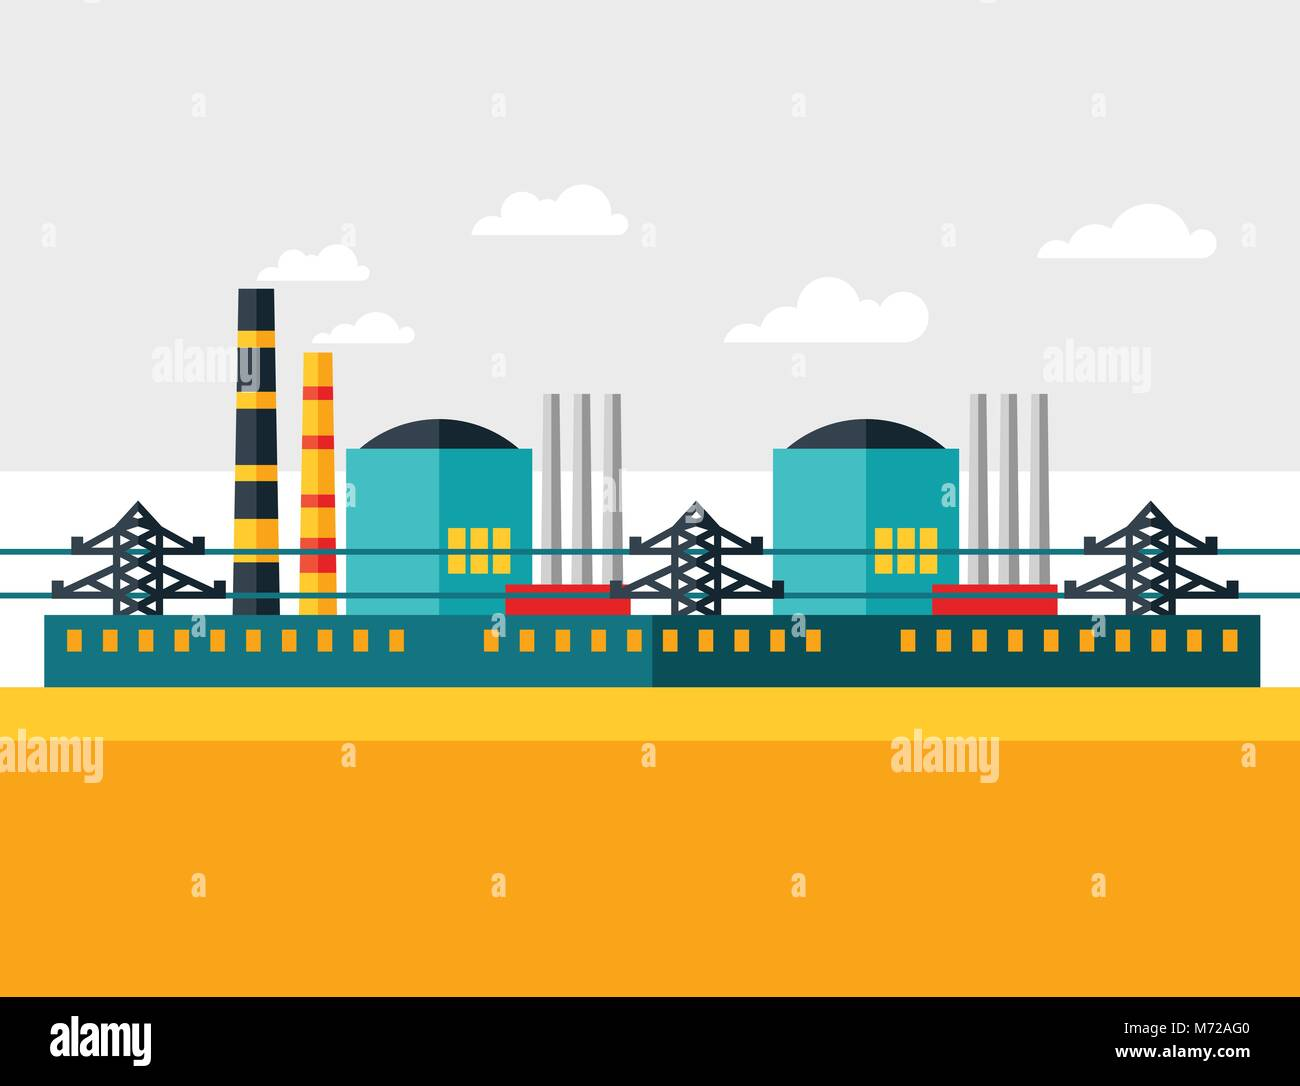 Illustration Of Industrial Nuclear Power Plant In Flat Style Stock Vector Image Art Alamy